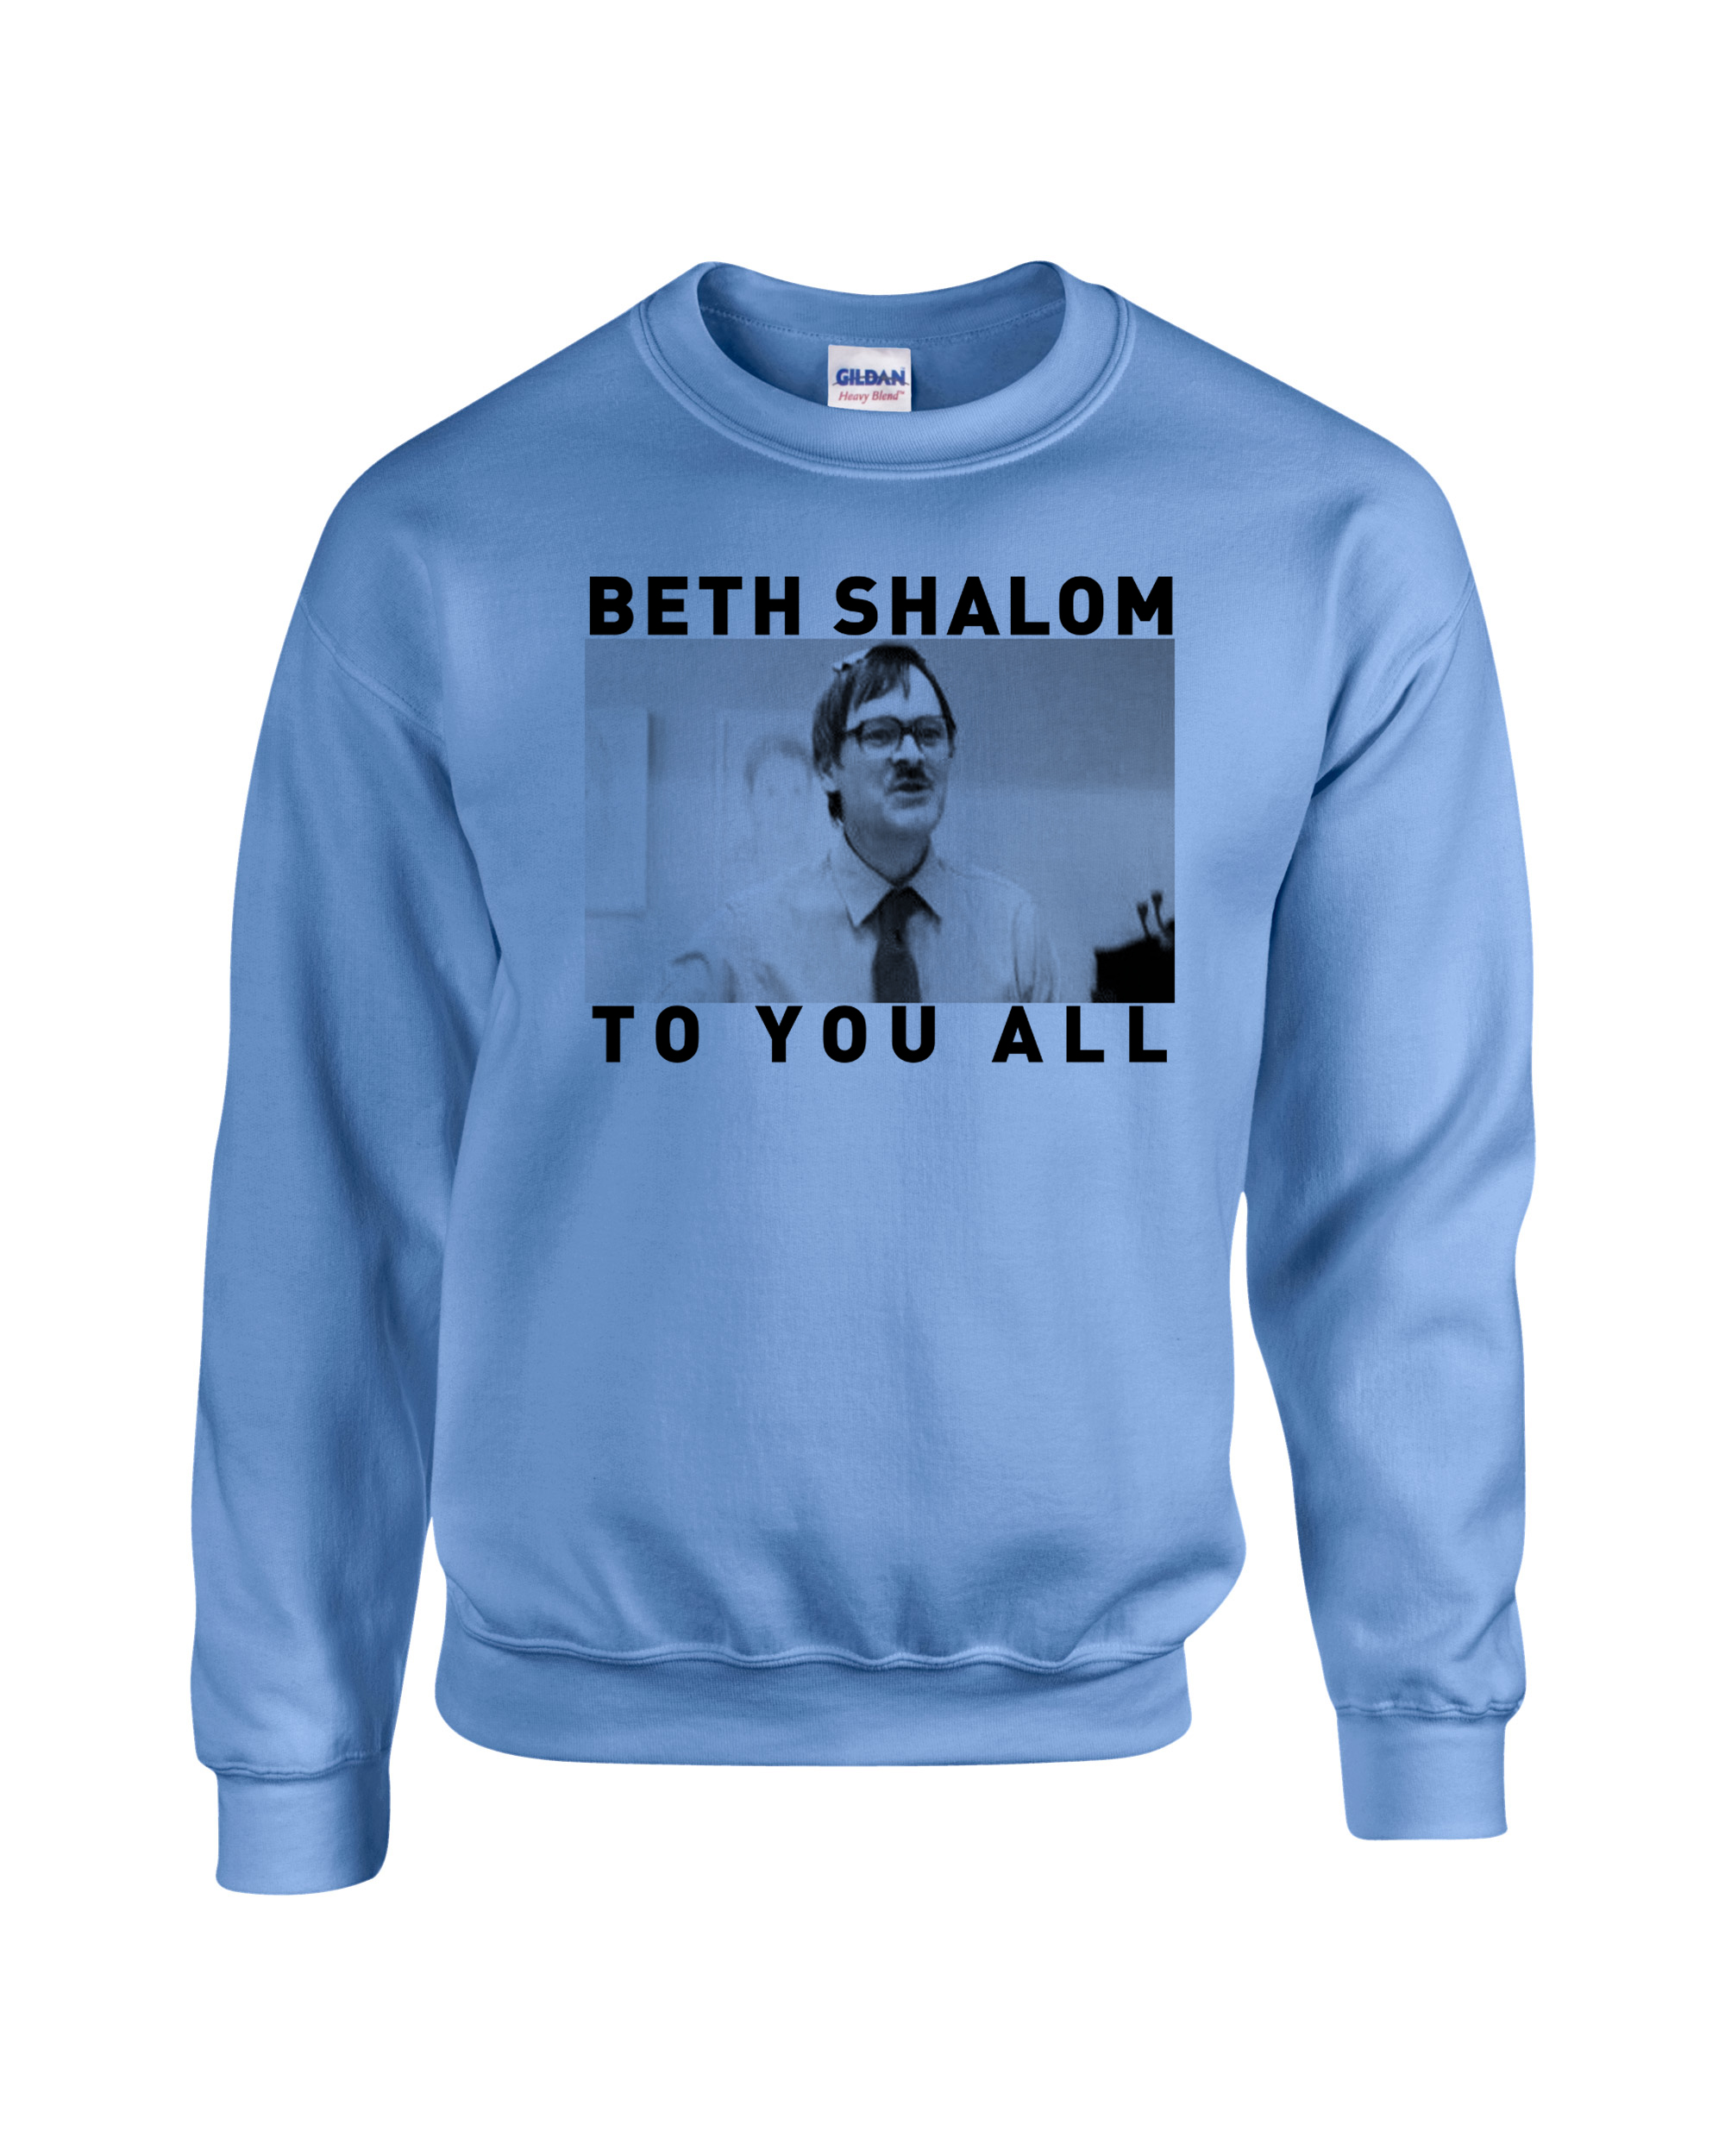 BETH SHALOM TO YOU ALL SWEATER